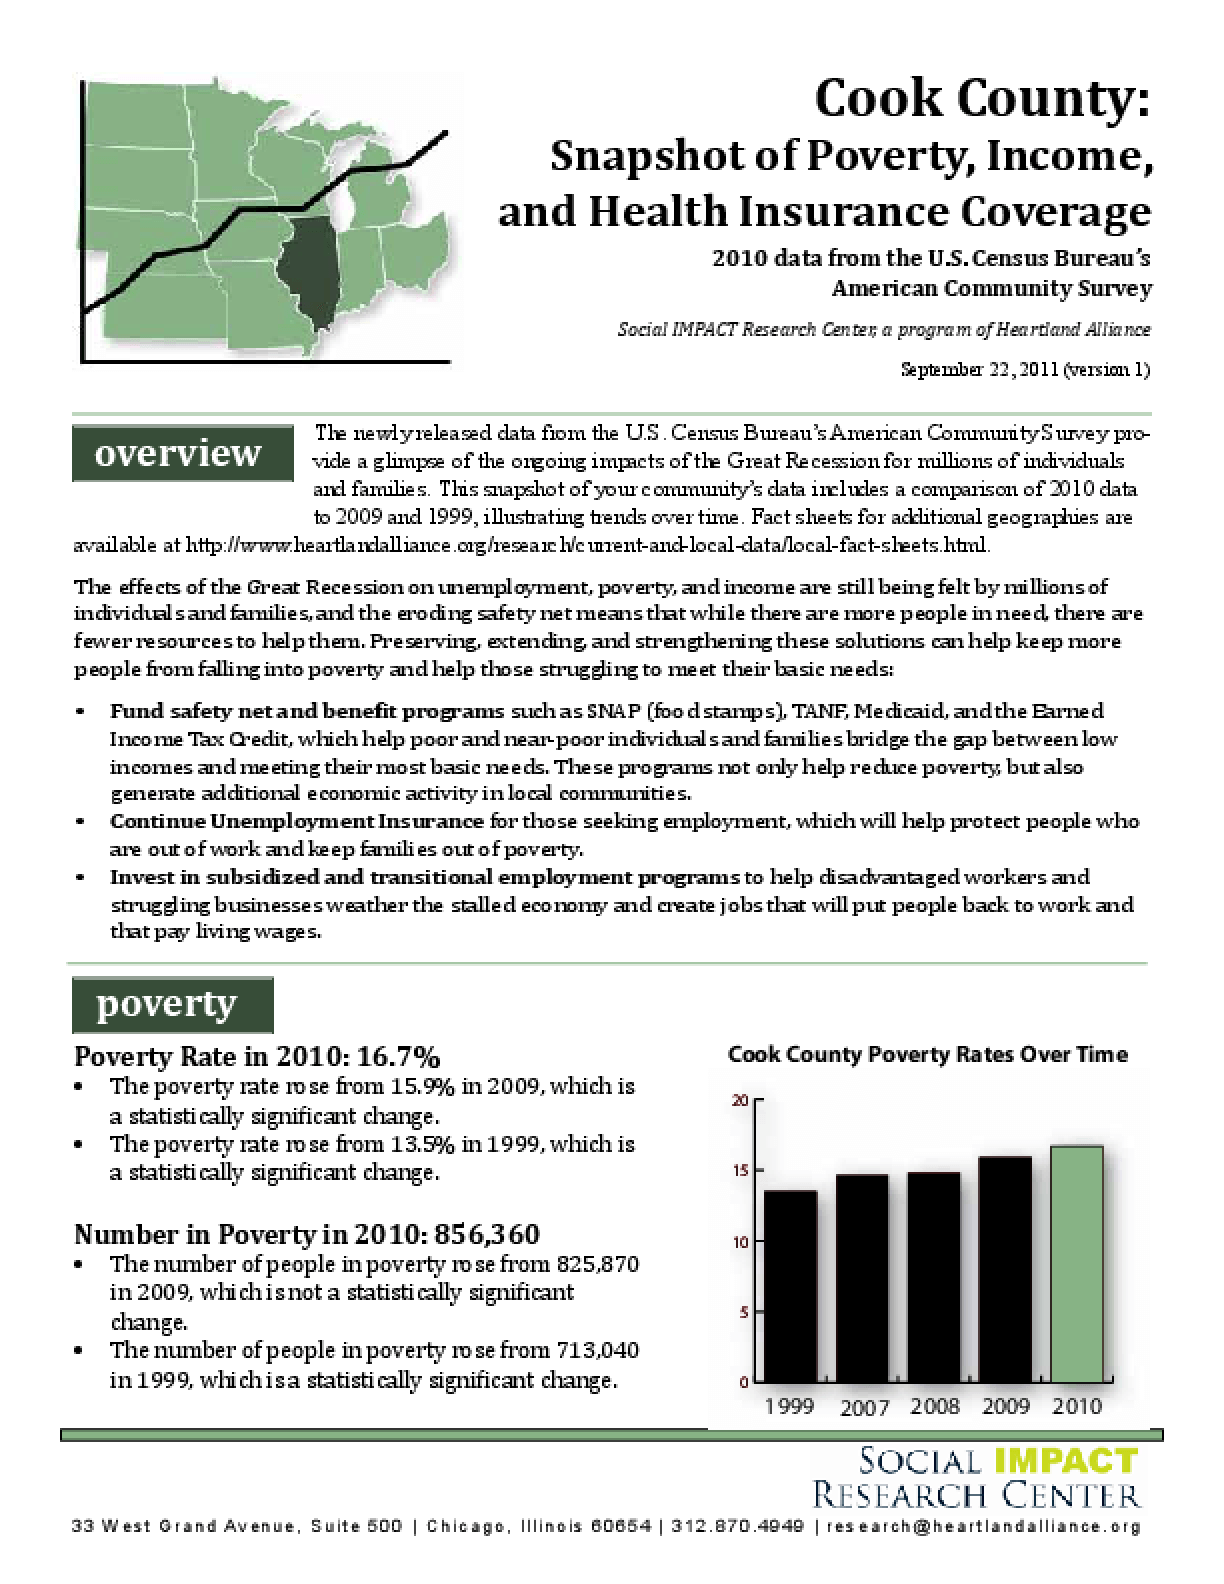 Cook County: Snapshot of Poverty, Income, and Health Insurance Coverage, 2010 Data from the U.S. Census Bureau's American Community Survey